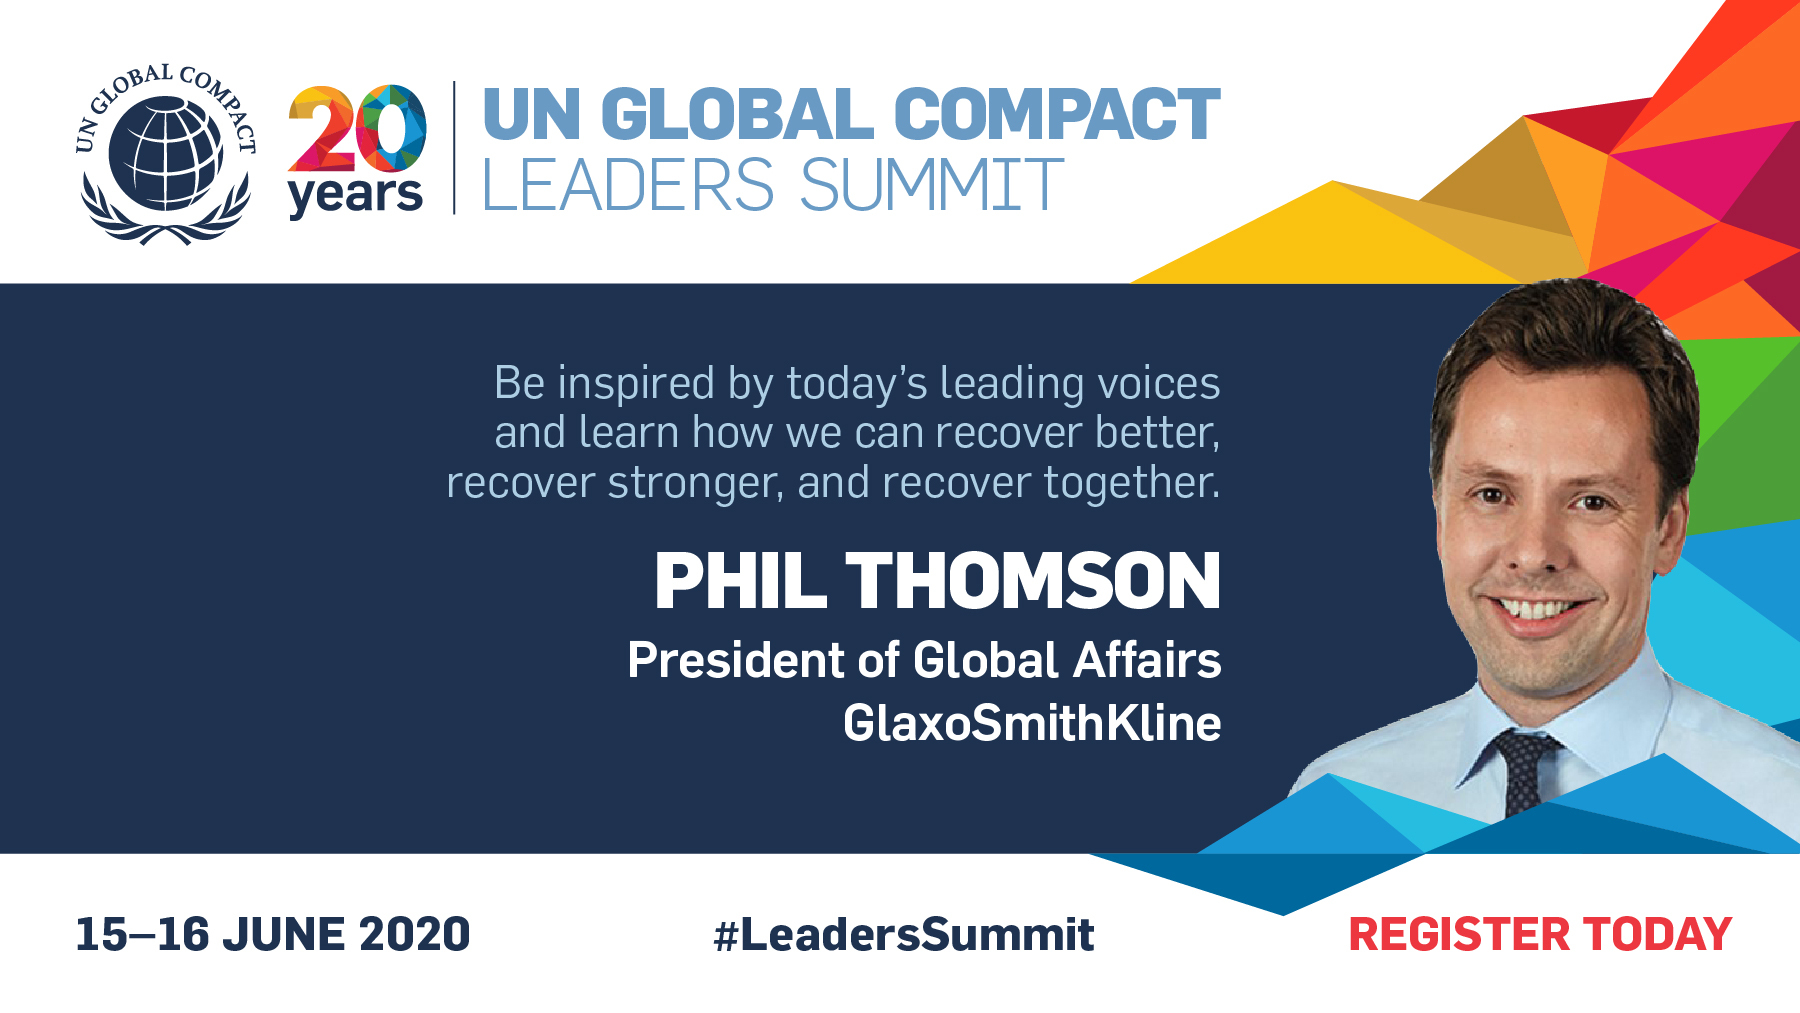 On 15 June, our President Global Affairs, Phil Thomson, will join the UN @globalcompact virtual #LeadersSummit to speak on #UnitingBusiness to build a health-resilient world. https://t.co/bTr3G1Seju